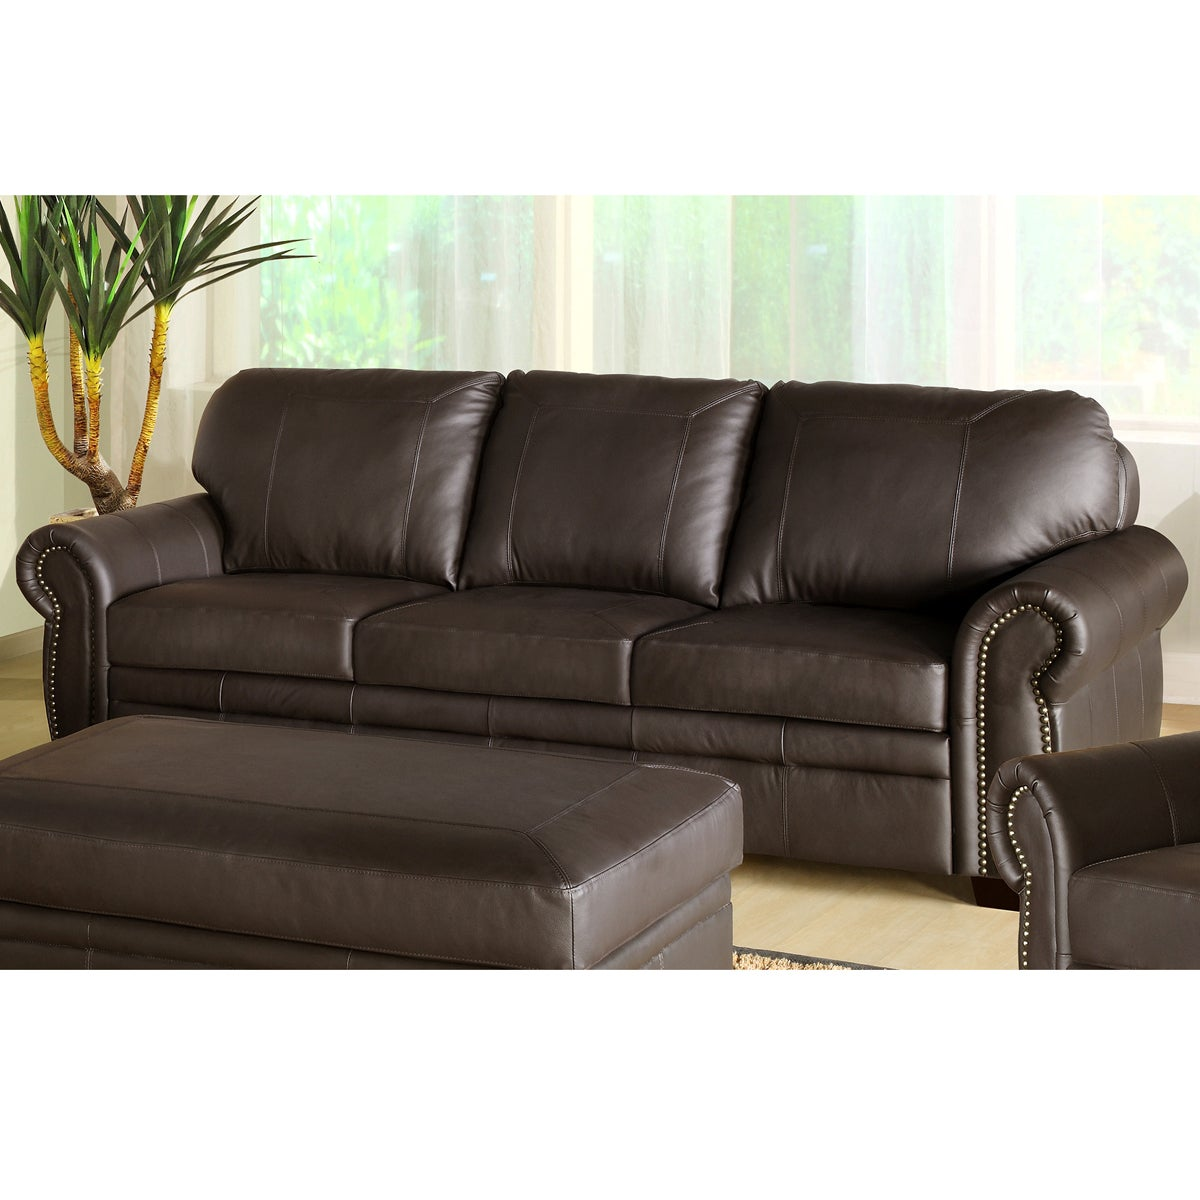 abbyson living signature italian leather sofa 14475362 overstock